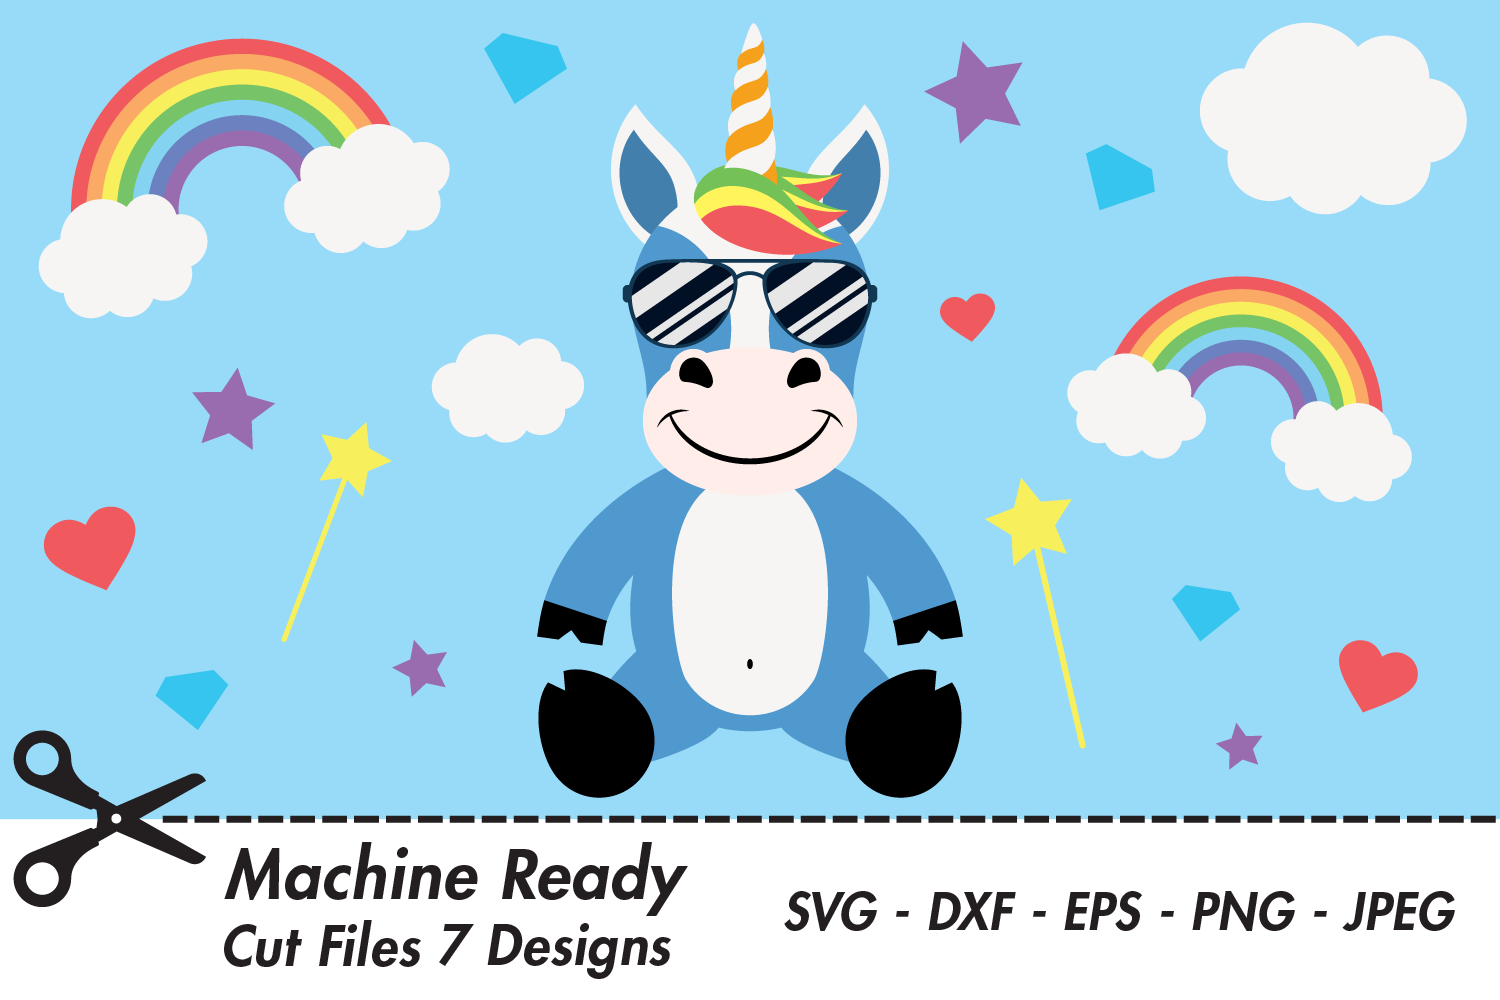 Download Free Cute Boy Unicorn With Shades Graphic By Captaincreative for Cricut Explore, Silhouette and other cutting machines.